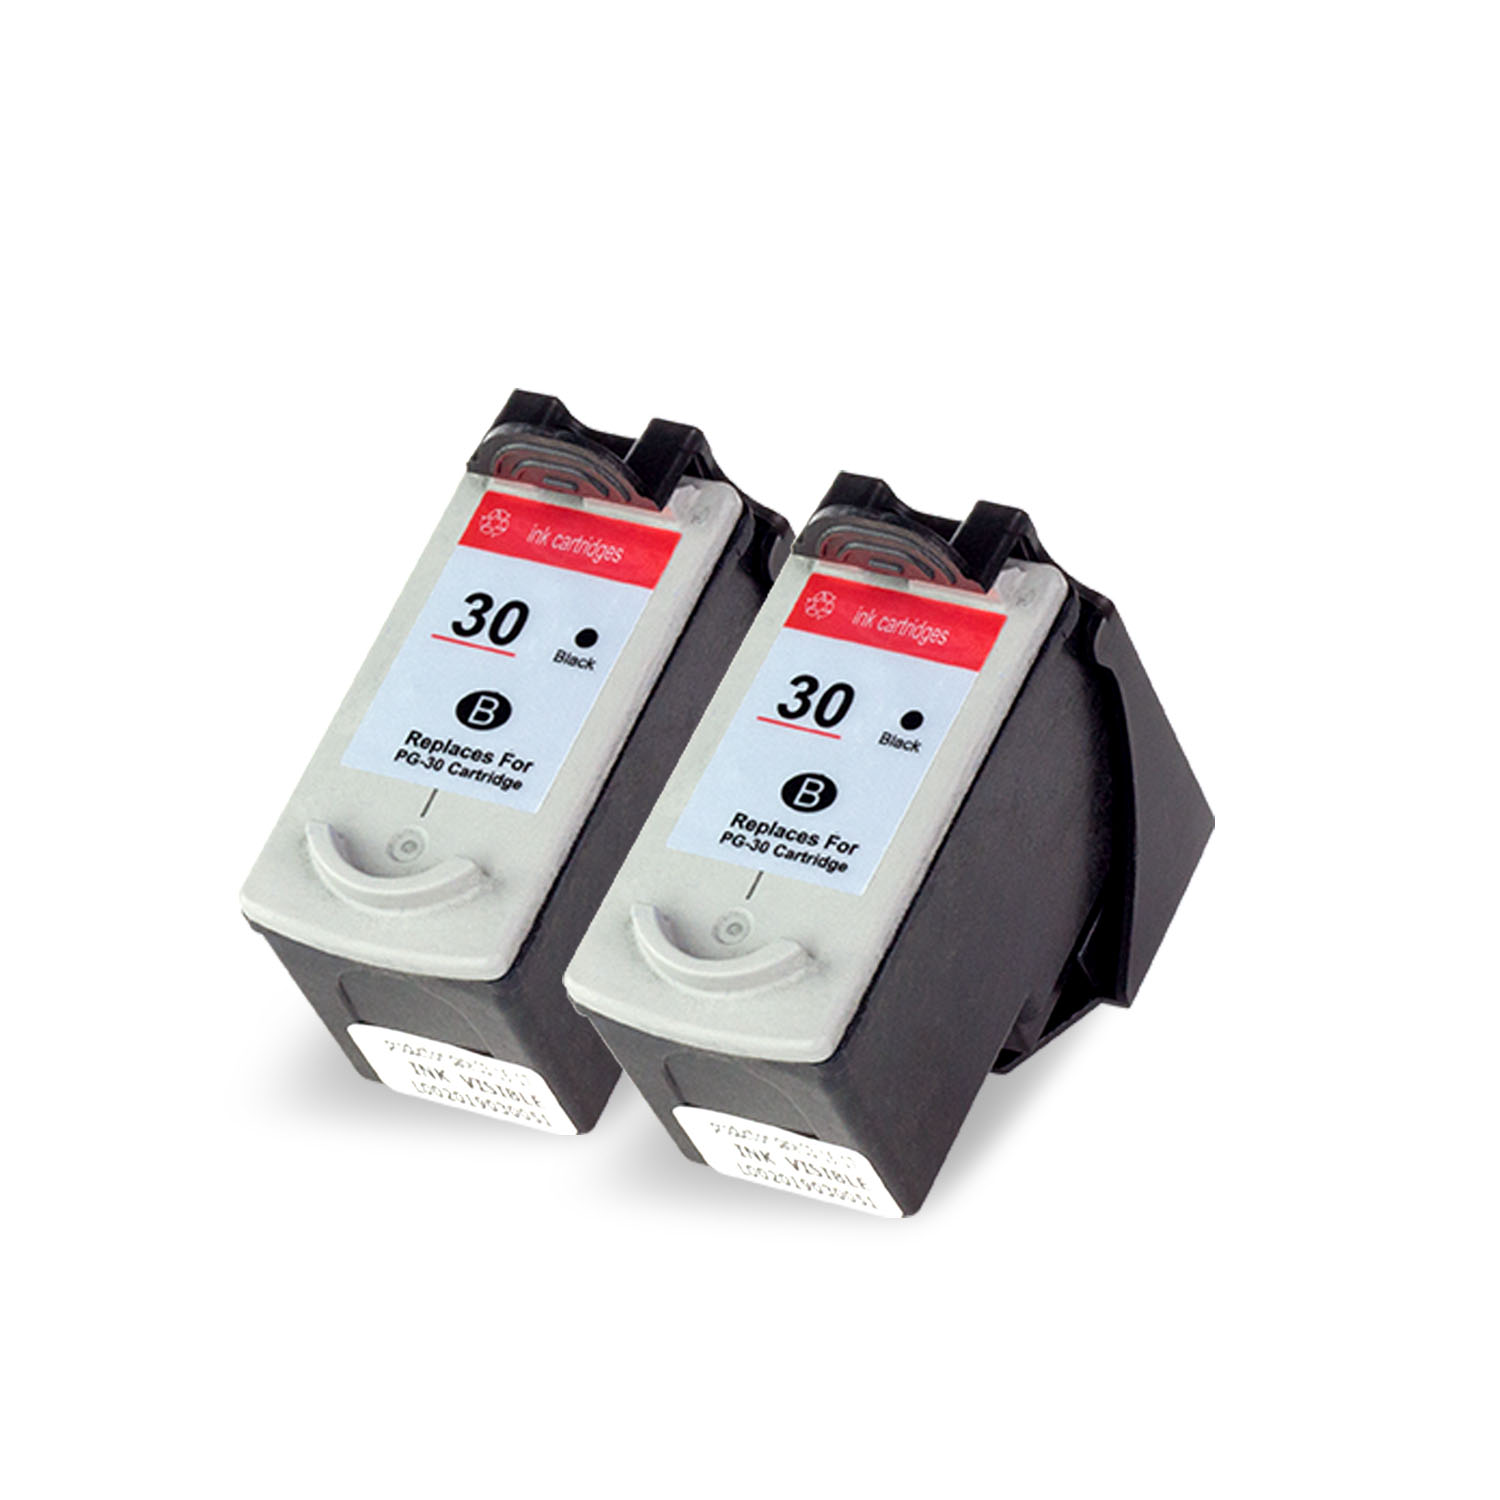 OFFICESMARTINK - PG30 Canon Cartridge Compatible [2 Pack] Black Ink Cartridge w/ Auto-Reset Ink for Canon PIXMA iP1800, iP2600, MP140, MP190, MP210, MP470, MX300, MX310